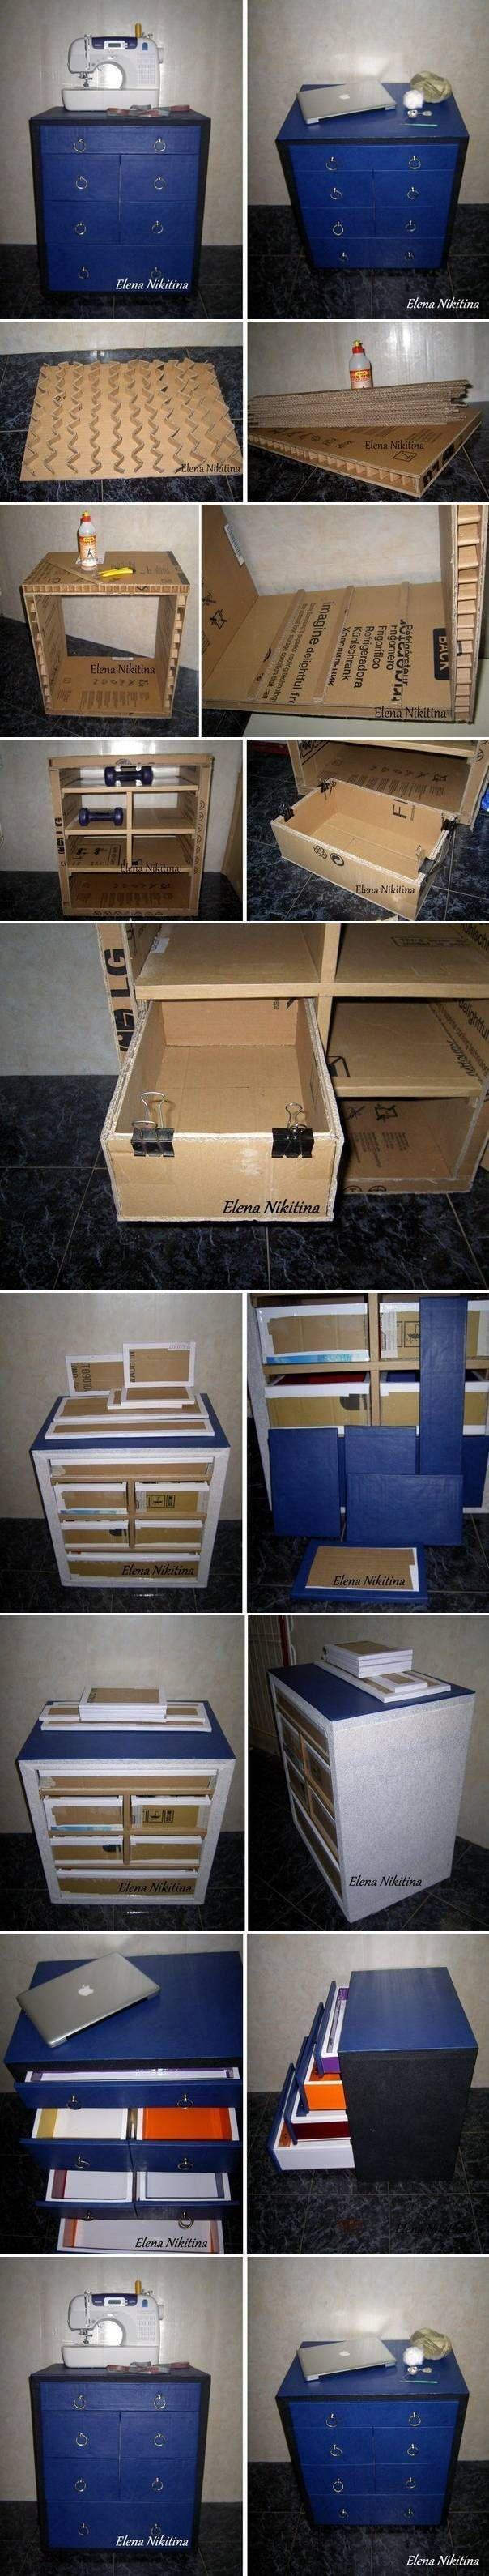 DIY Cardboard Chest with Drawers                                                                                                                                                                                 Mais